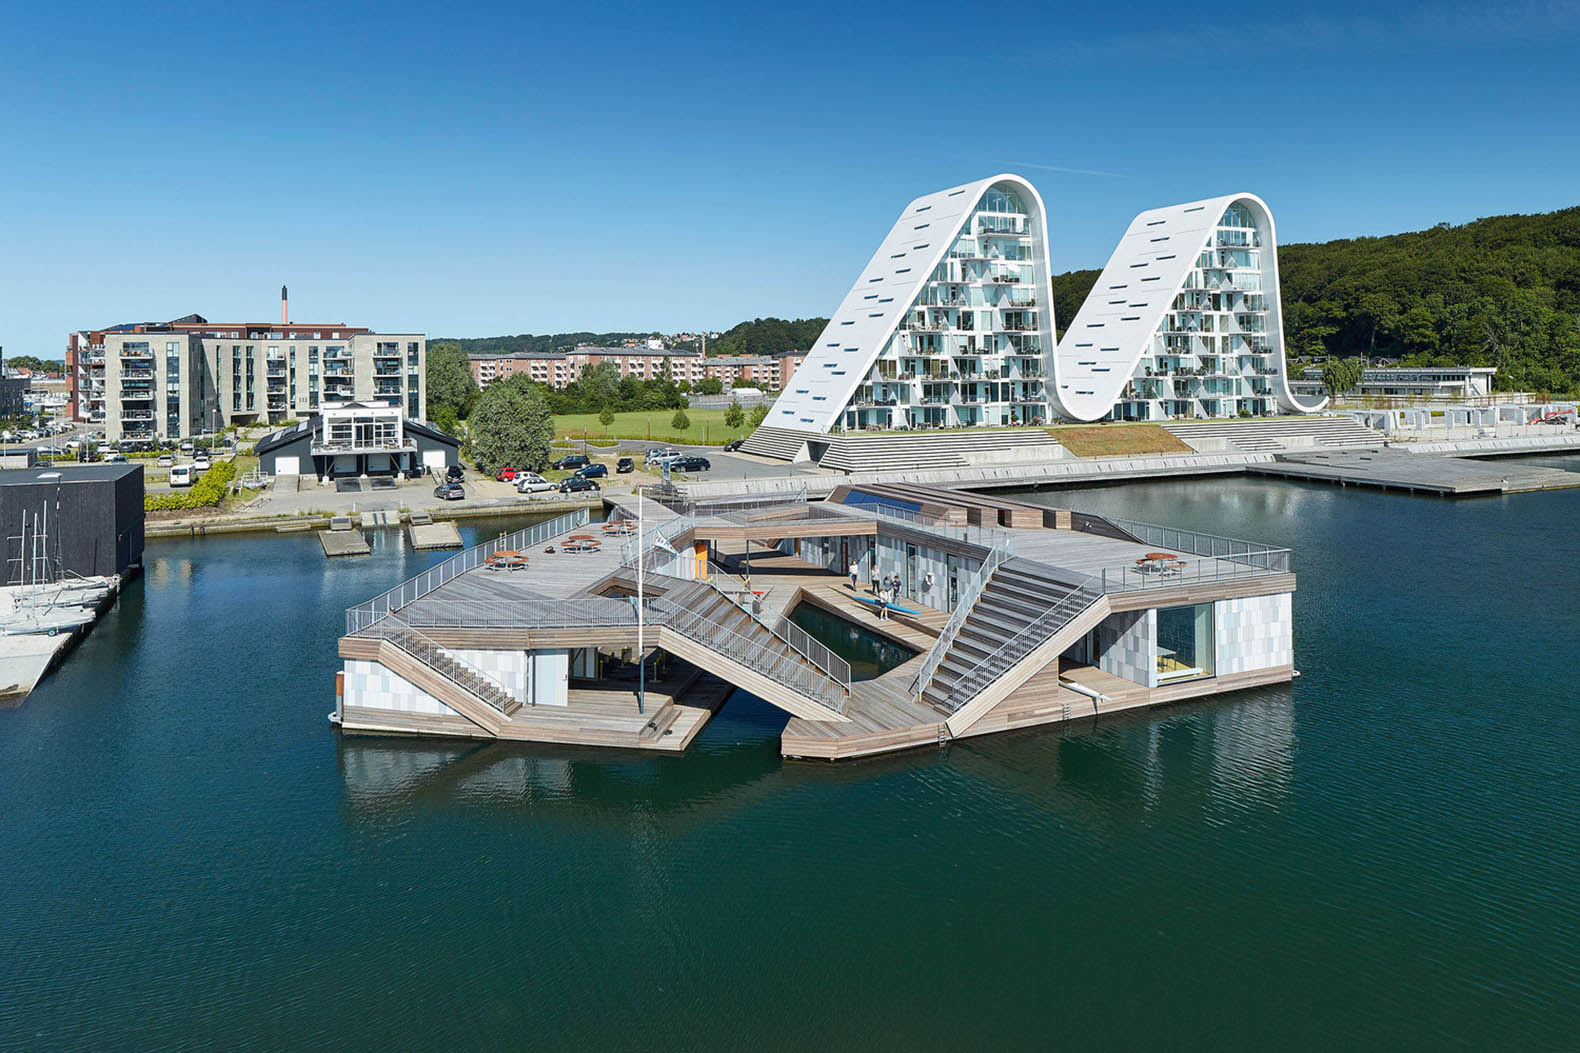 Sculptural floating kayak club doubles as a beautiful community space in Denmark